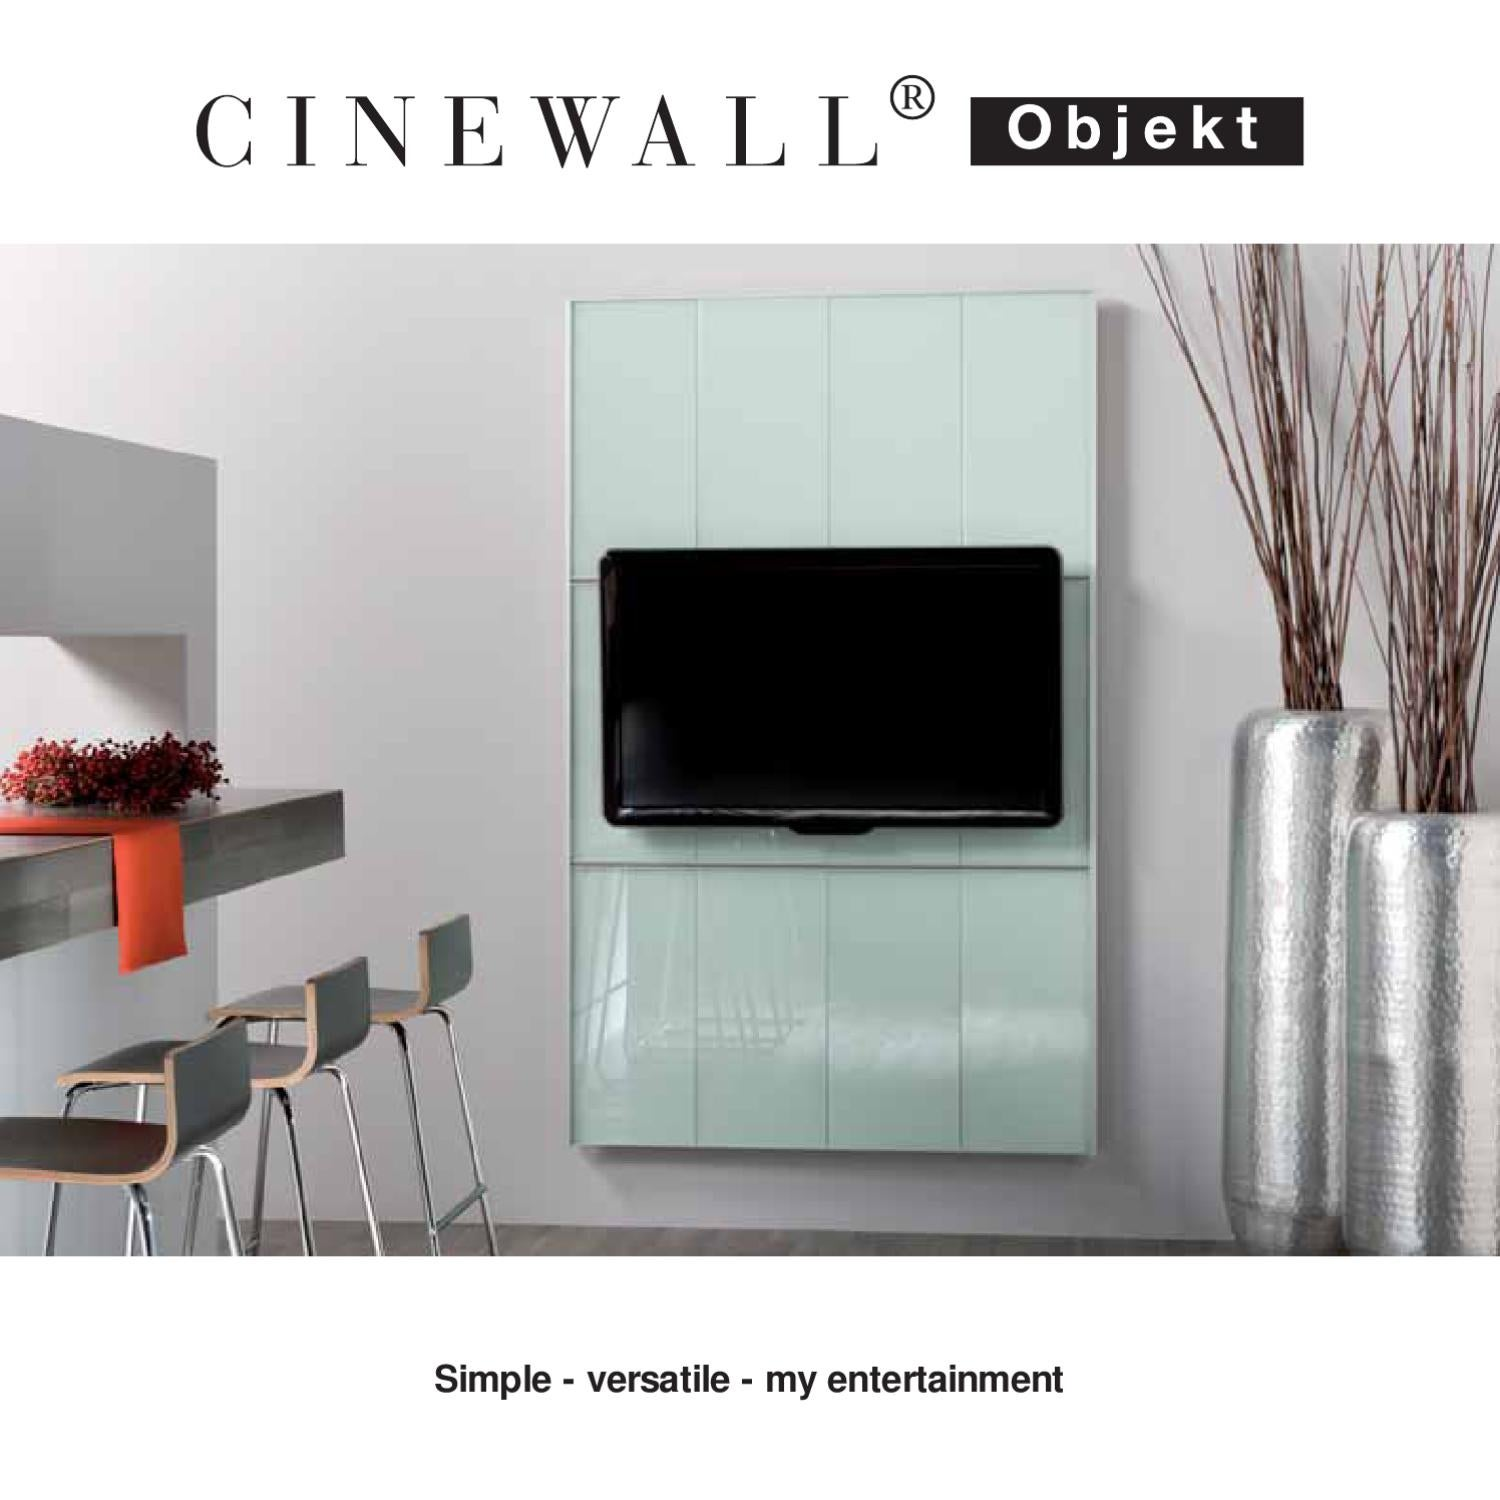 Cinewall Tv Paneel Cinewall Tv Üniteleri By Cem Pazarlama Issuu